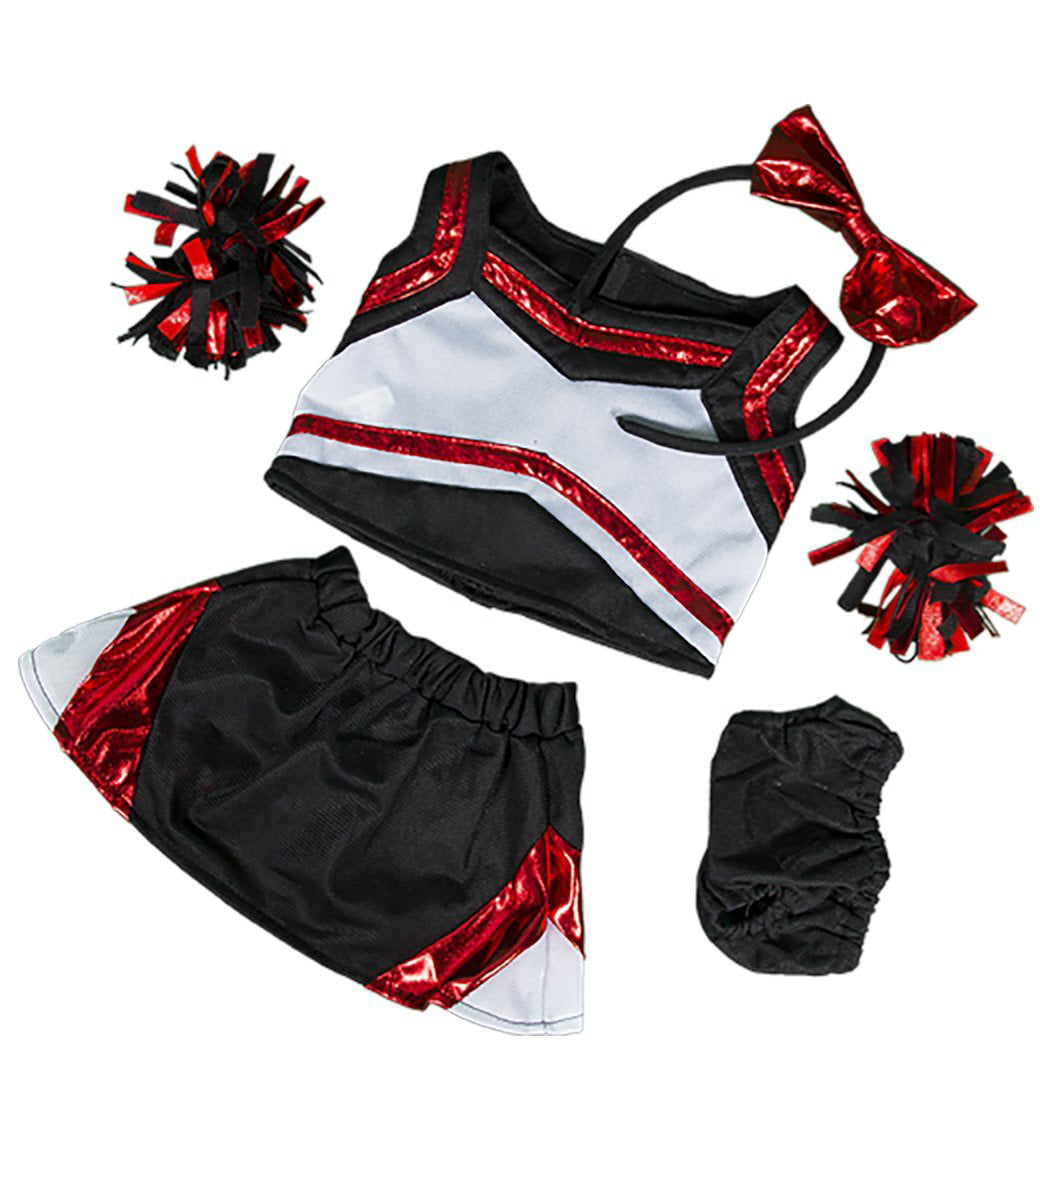 "Metallic Red & Black Cheerleader Teddy Bear Clothes Outfit Fits Most 14"" 18""... by Teddy Mountain"